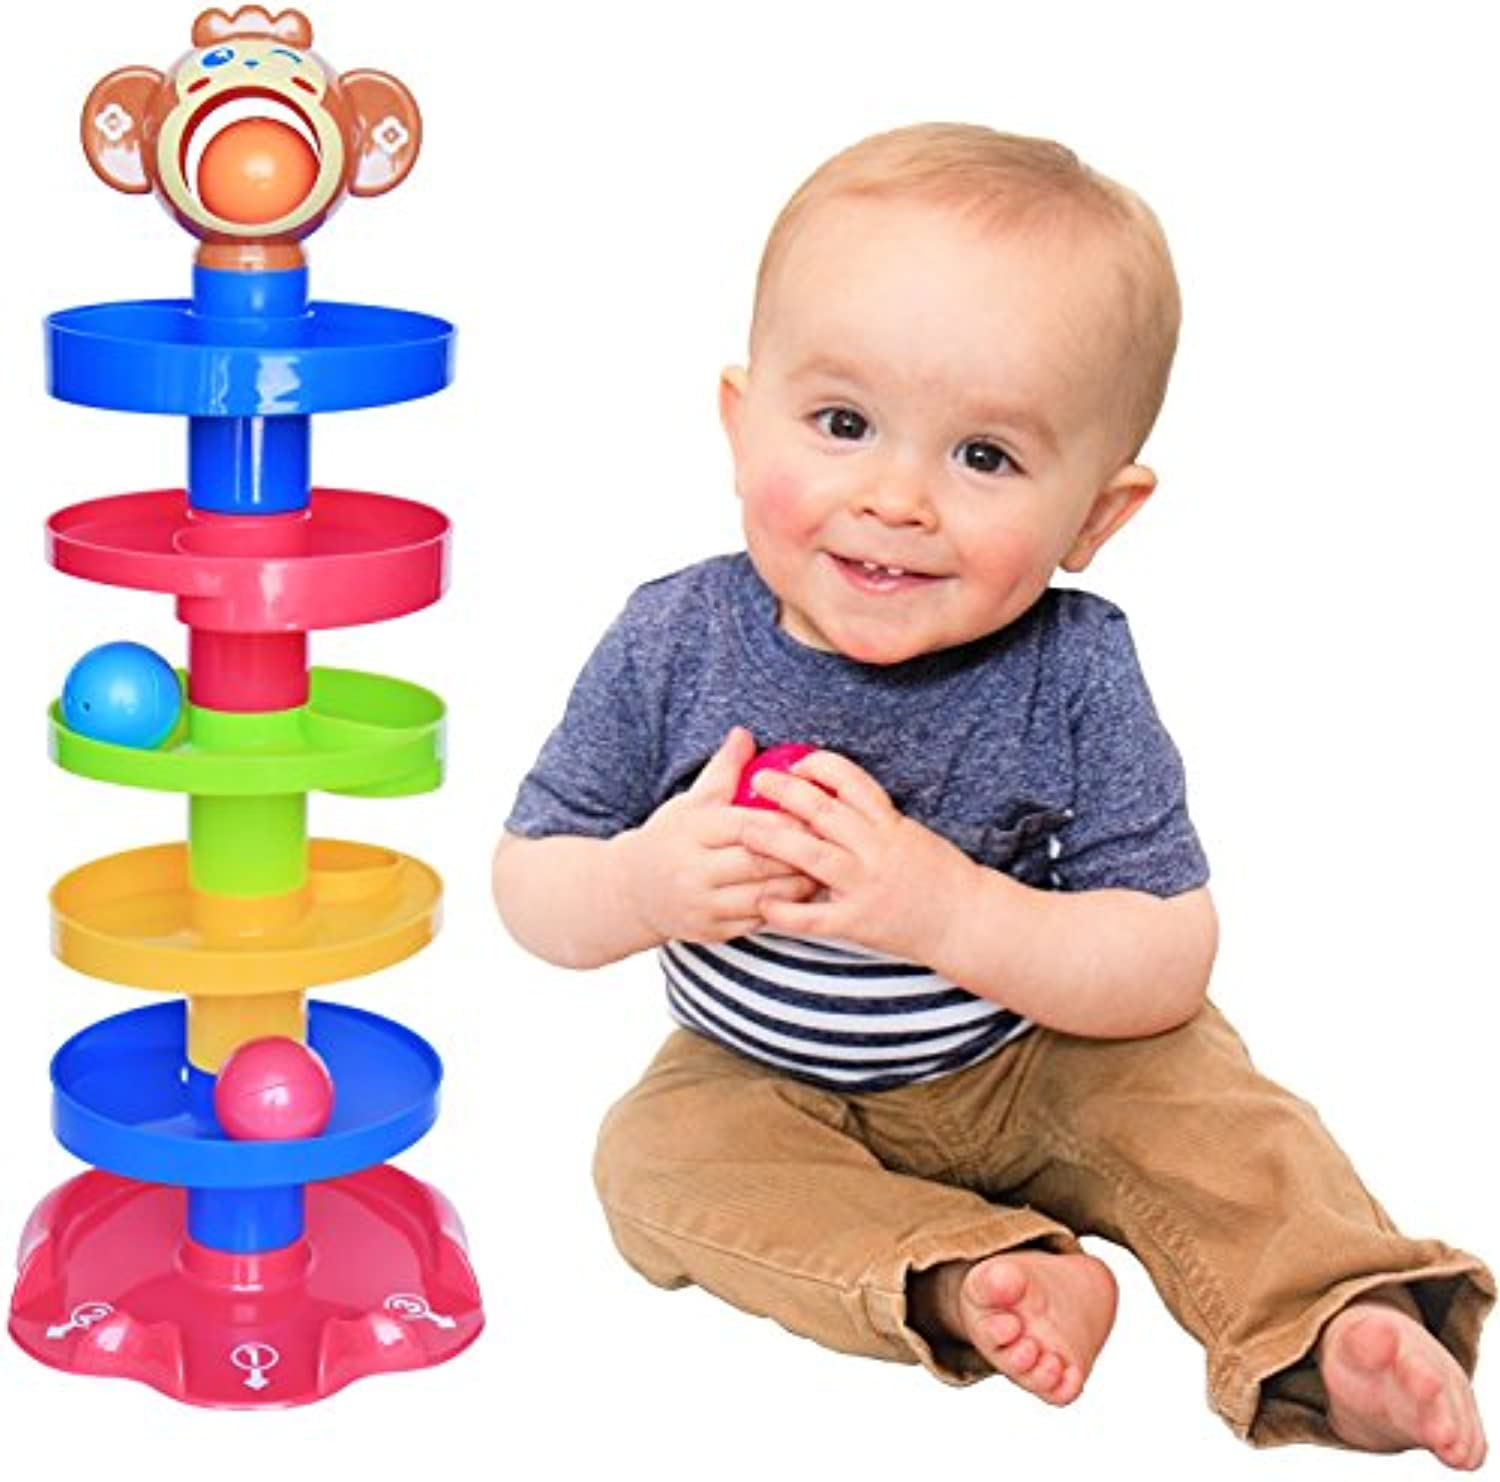 CC O Play Stackingペグwith additionalペグボードfor Toddlers – バンドルIncludes 50ペグ、2ペグボード、1ストレージバッグ – Bestモンテッソーリ教育玩具の子供と就学